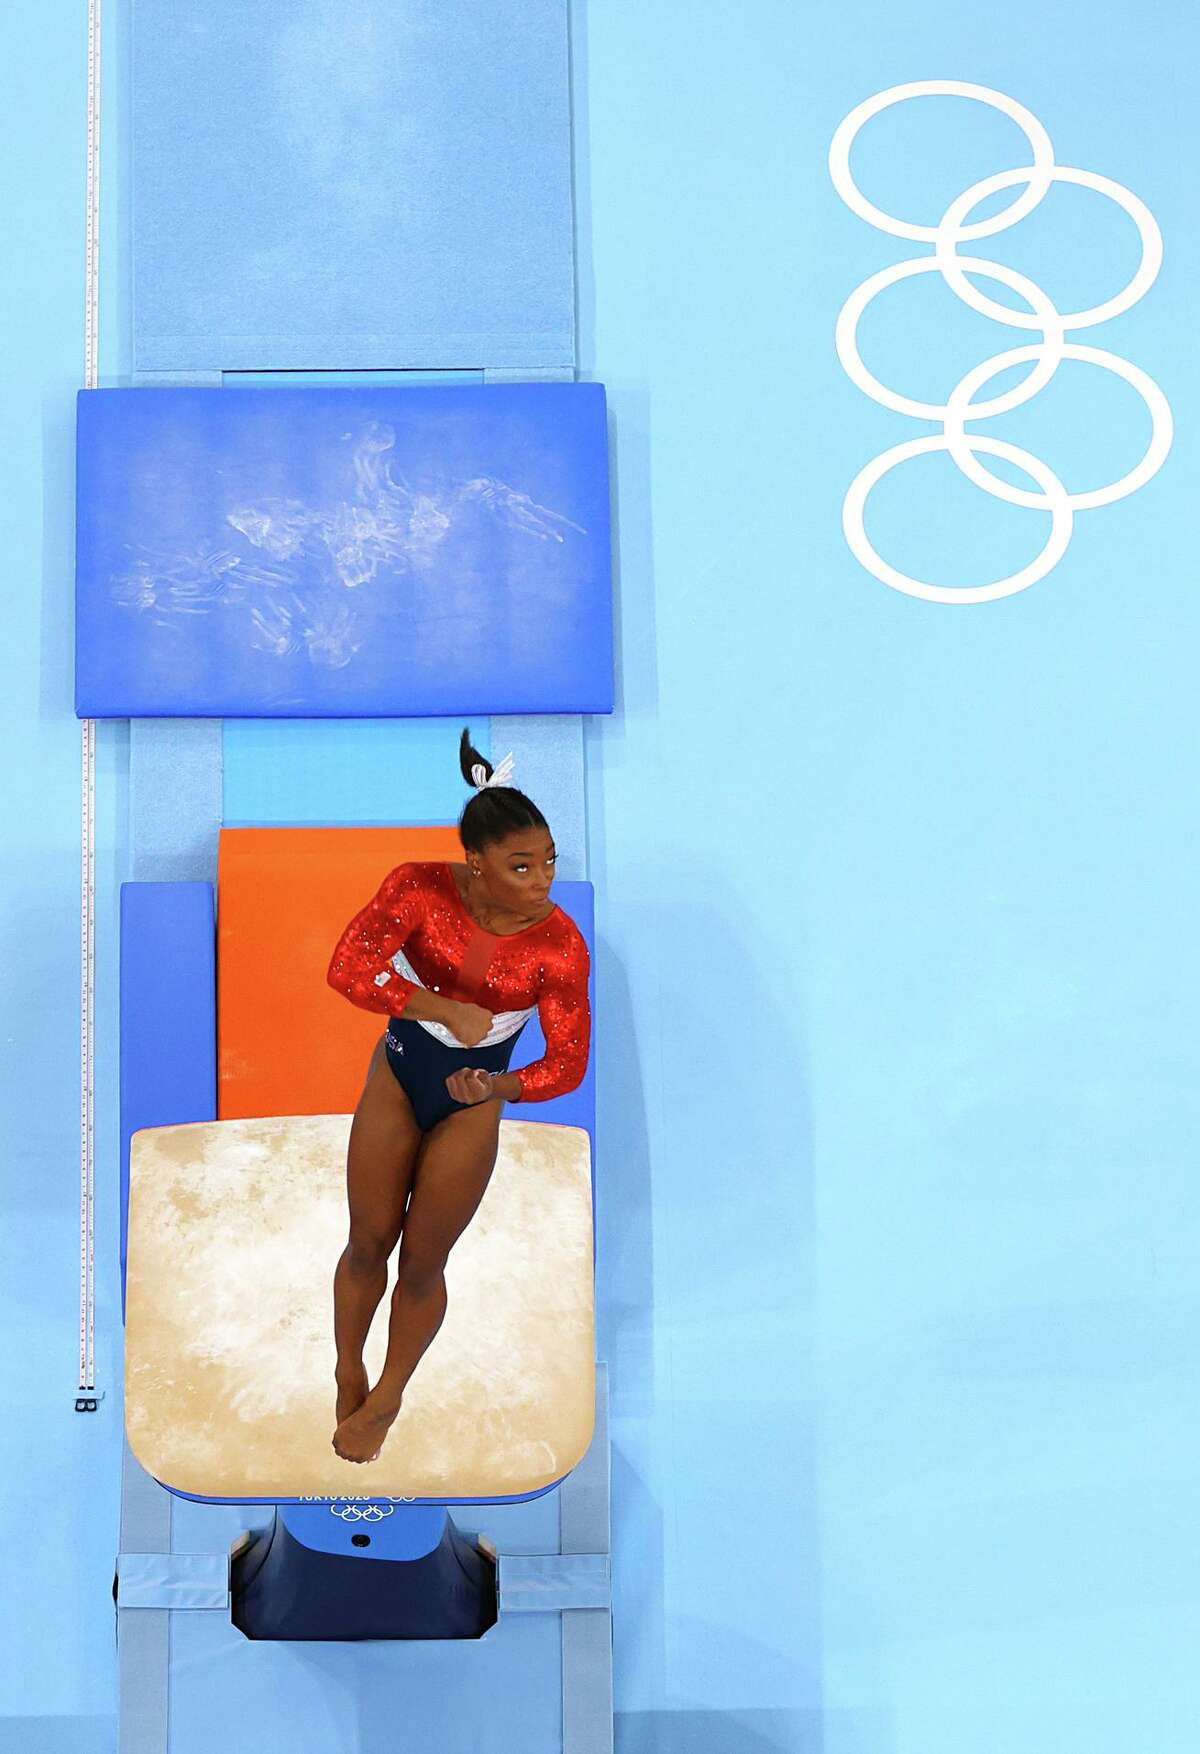 TOKYO, JAPAN - JULY 27: Simone Biles warms up on vault during the Women's Team Final on day four of the Tokyo 2020 Olympic Games at Ariake Gymnastics Centre on July 27, 2021 in Tokyo, Japan. (Photo by Laurence Griffiths/Getty Images)